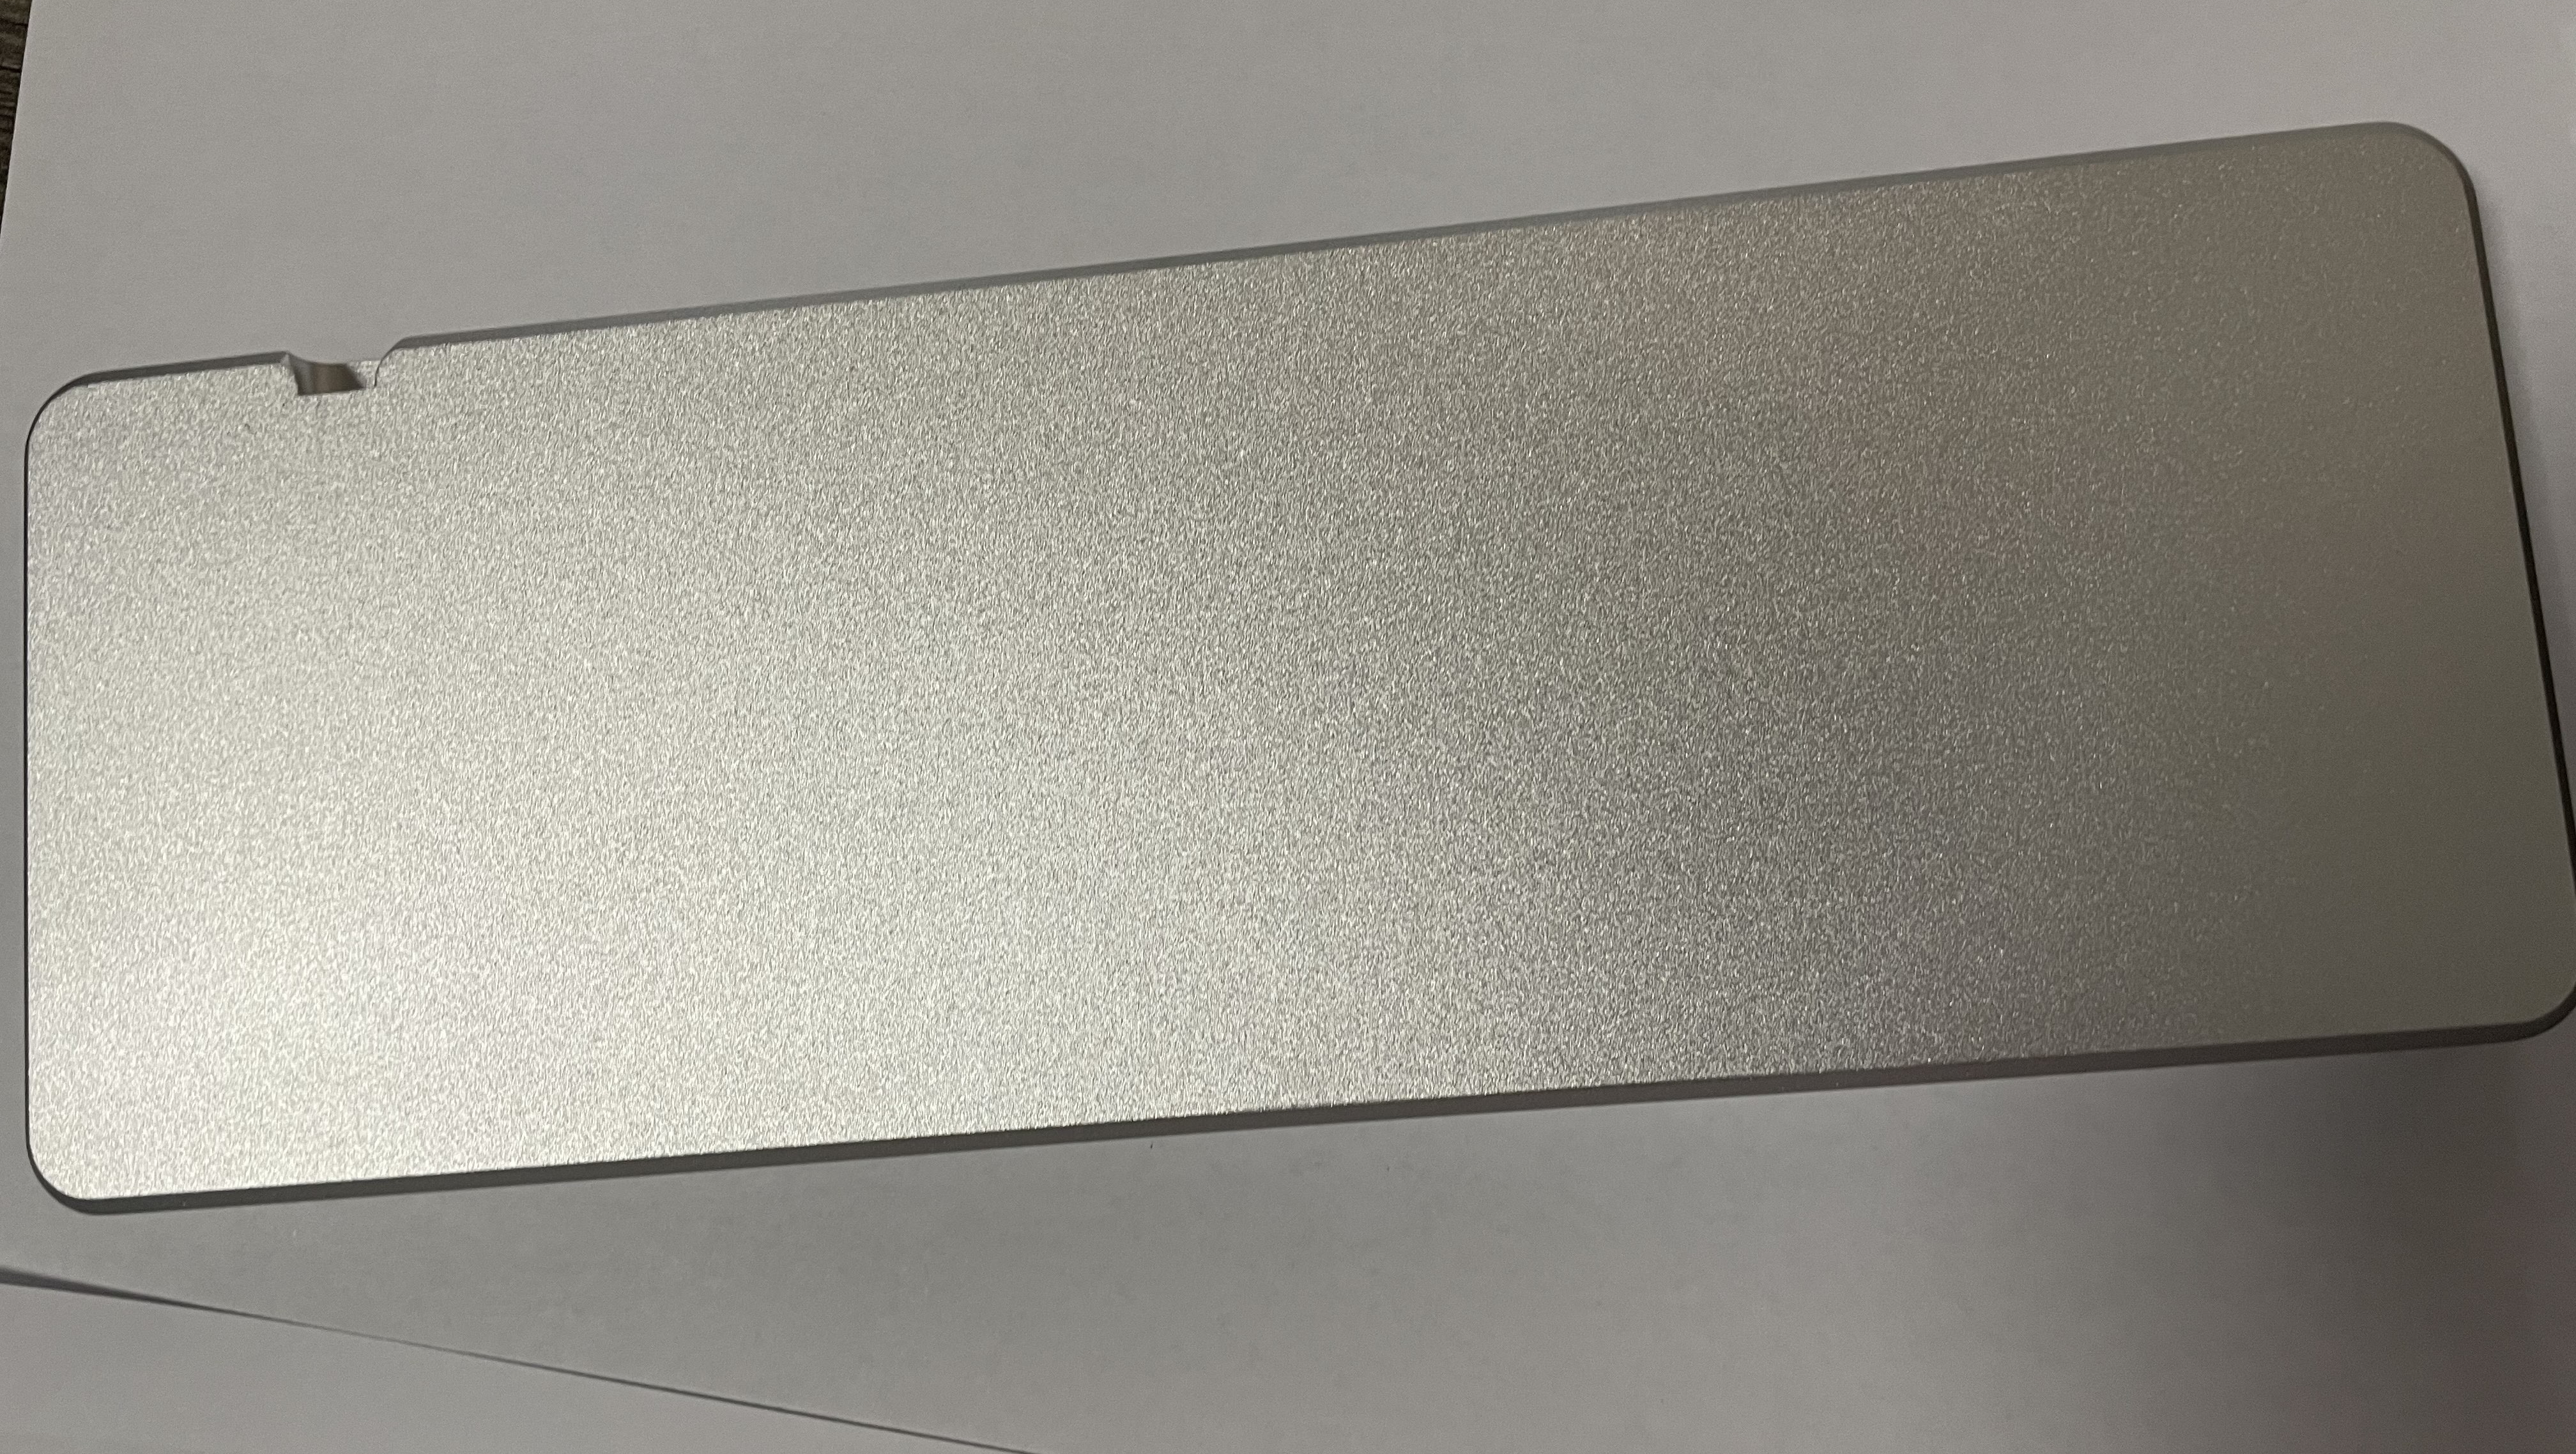 Bottom of a clear anodized aluminum 2nd revision prototype showing the sandblasted texture